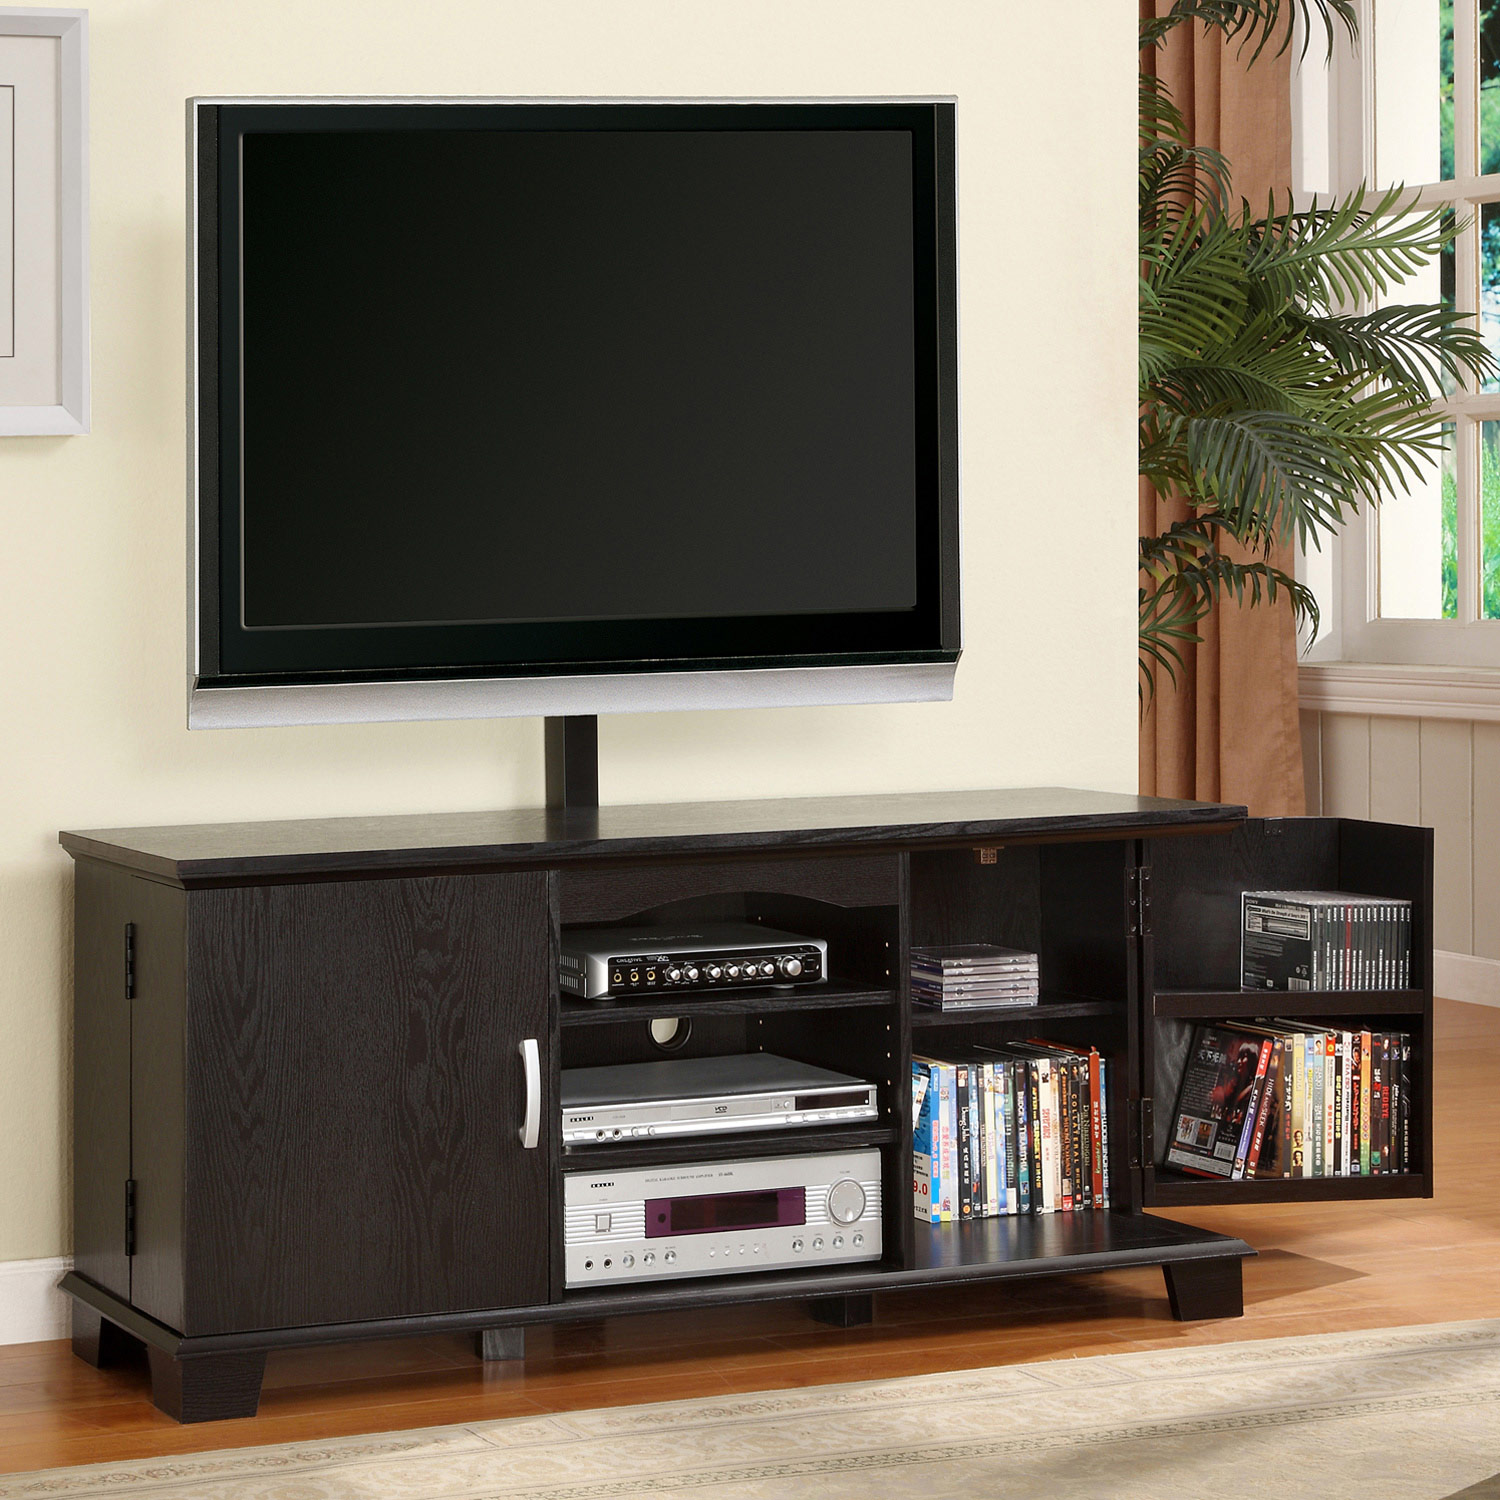 60'' Wood TV Console with Mount and Storage - Black